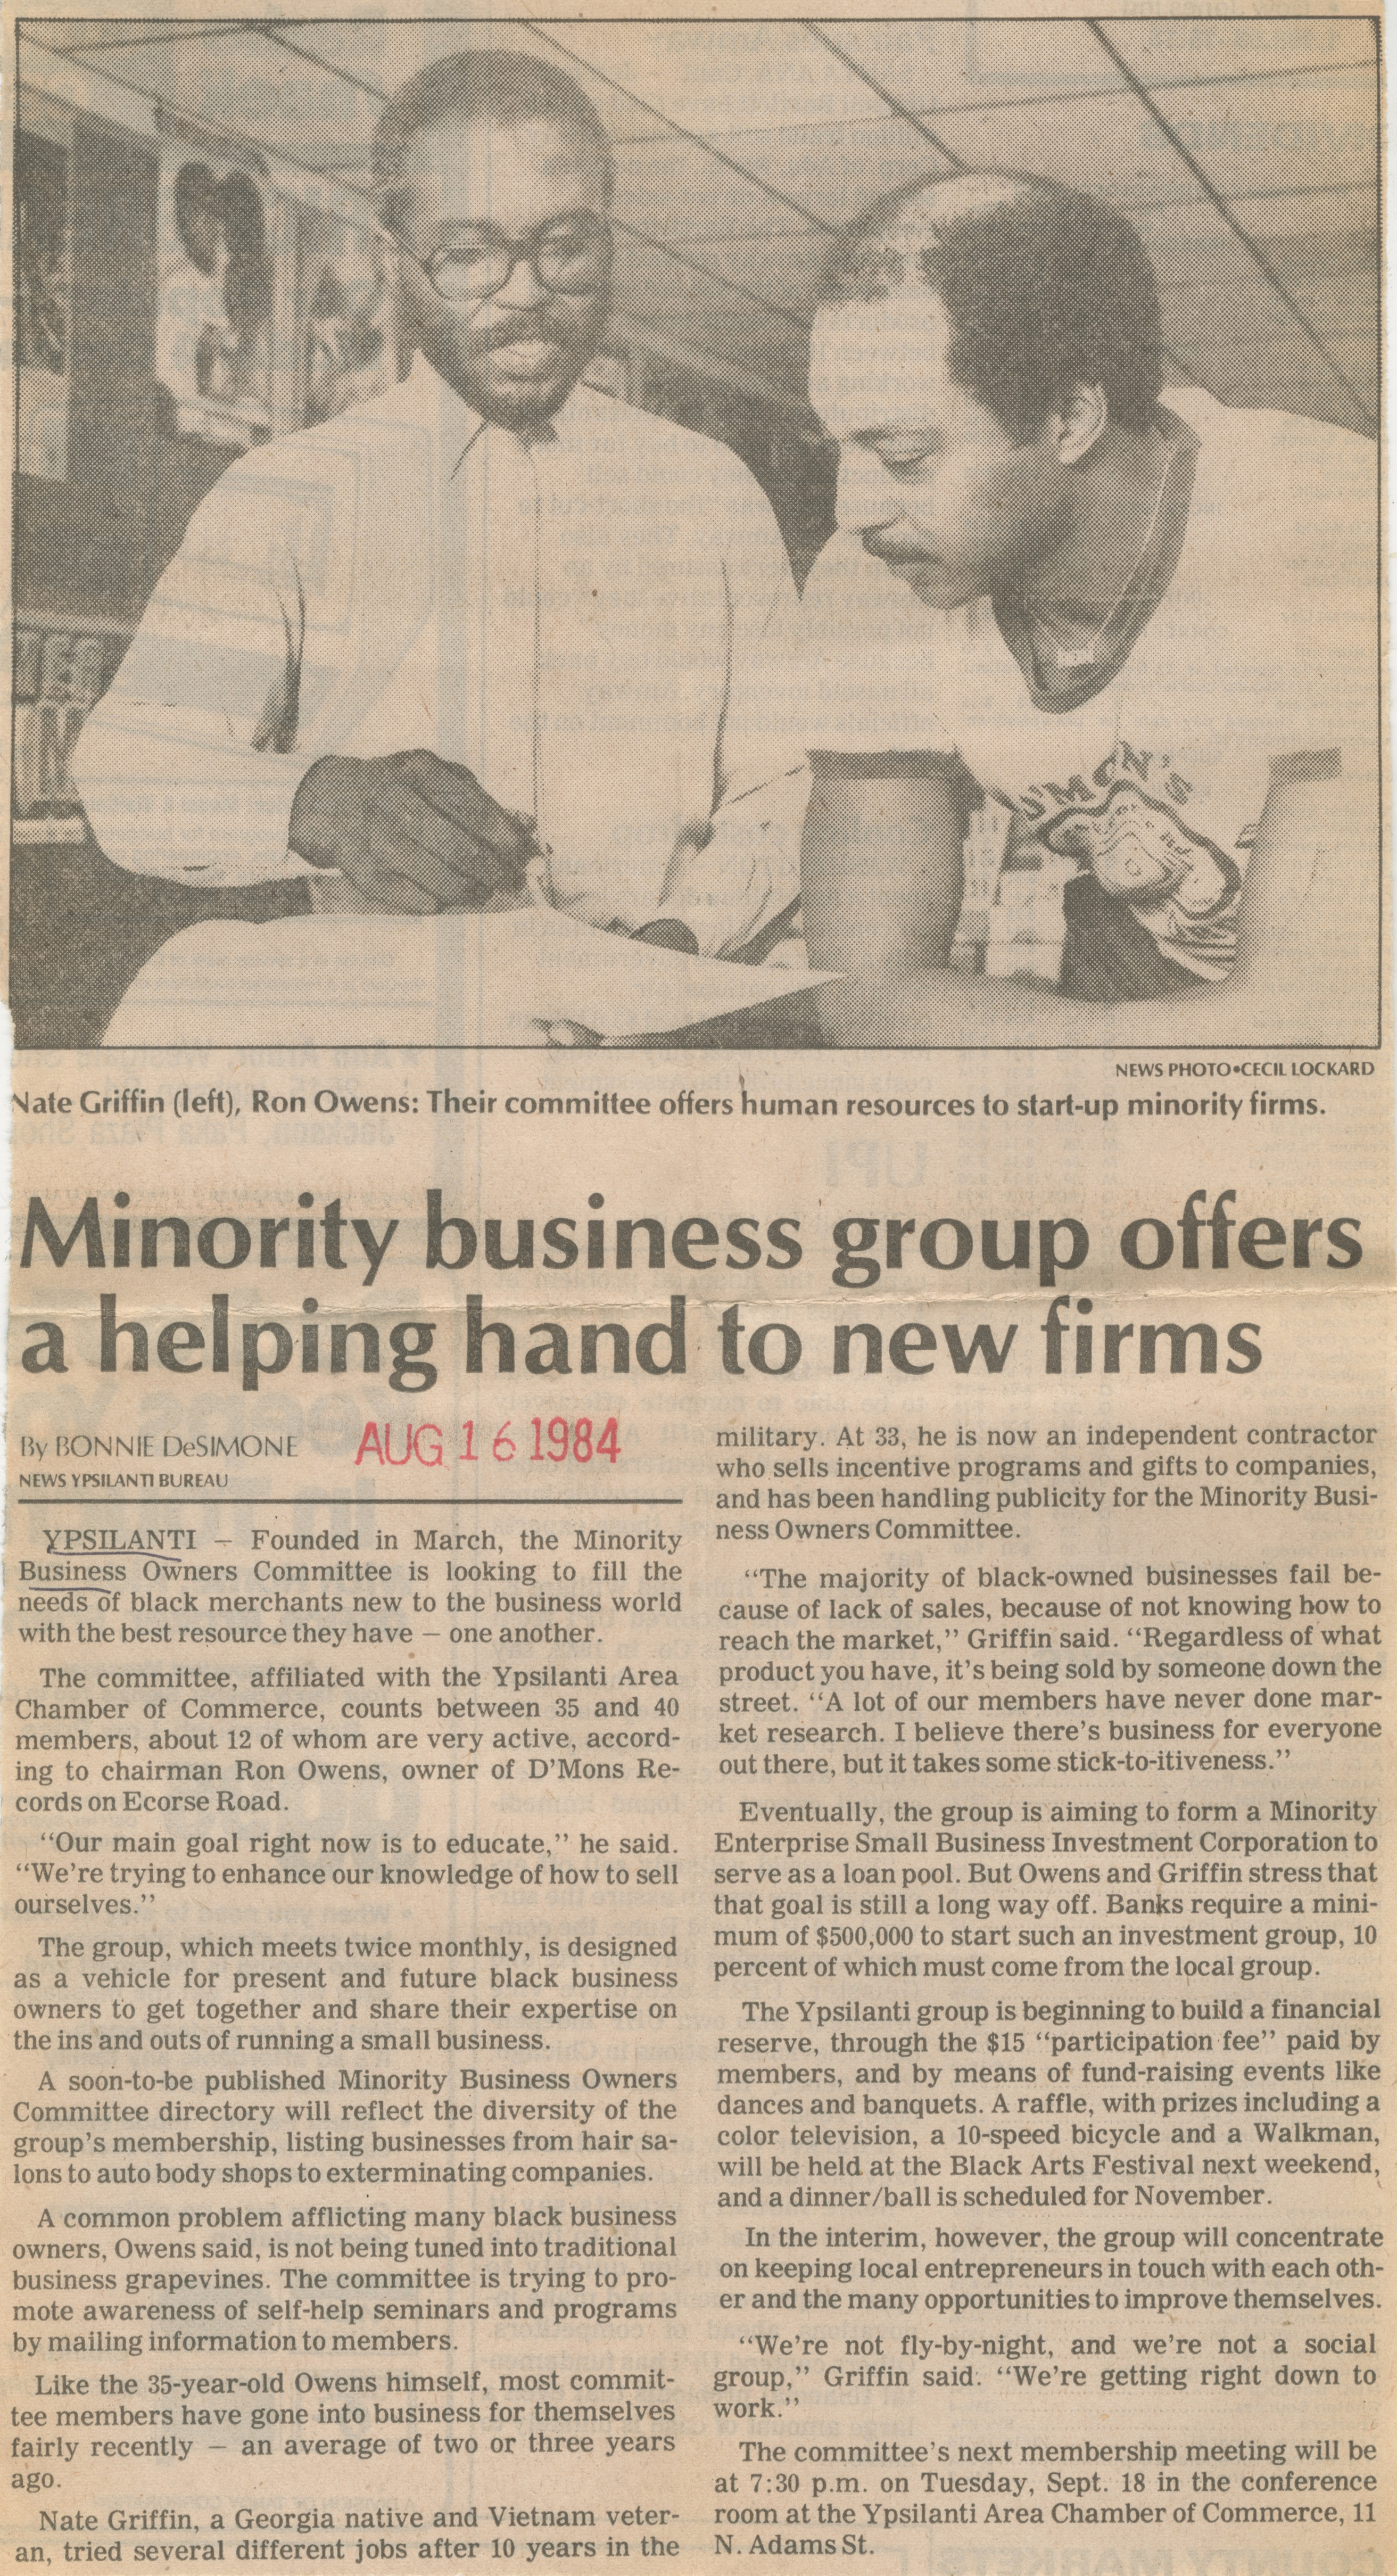 Minority Business Group Offers a Helping Hand to New Firms image